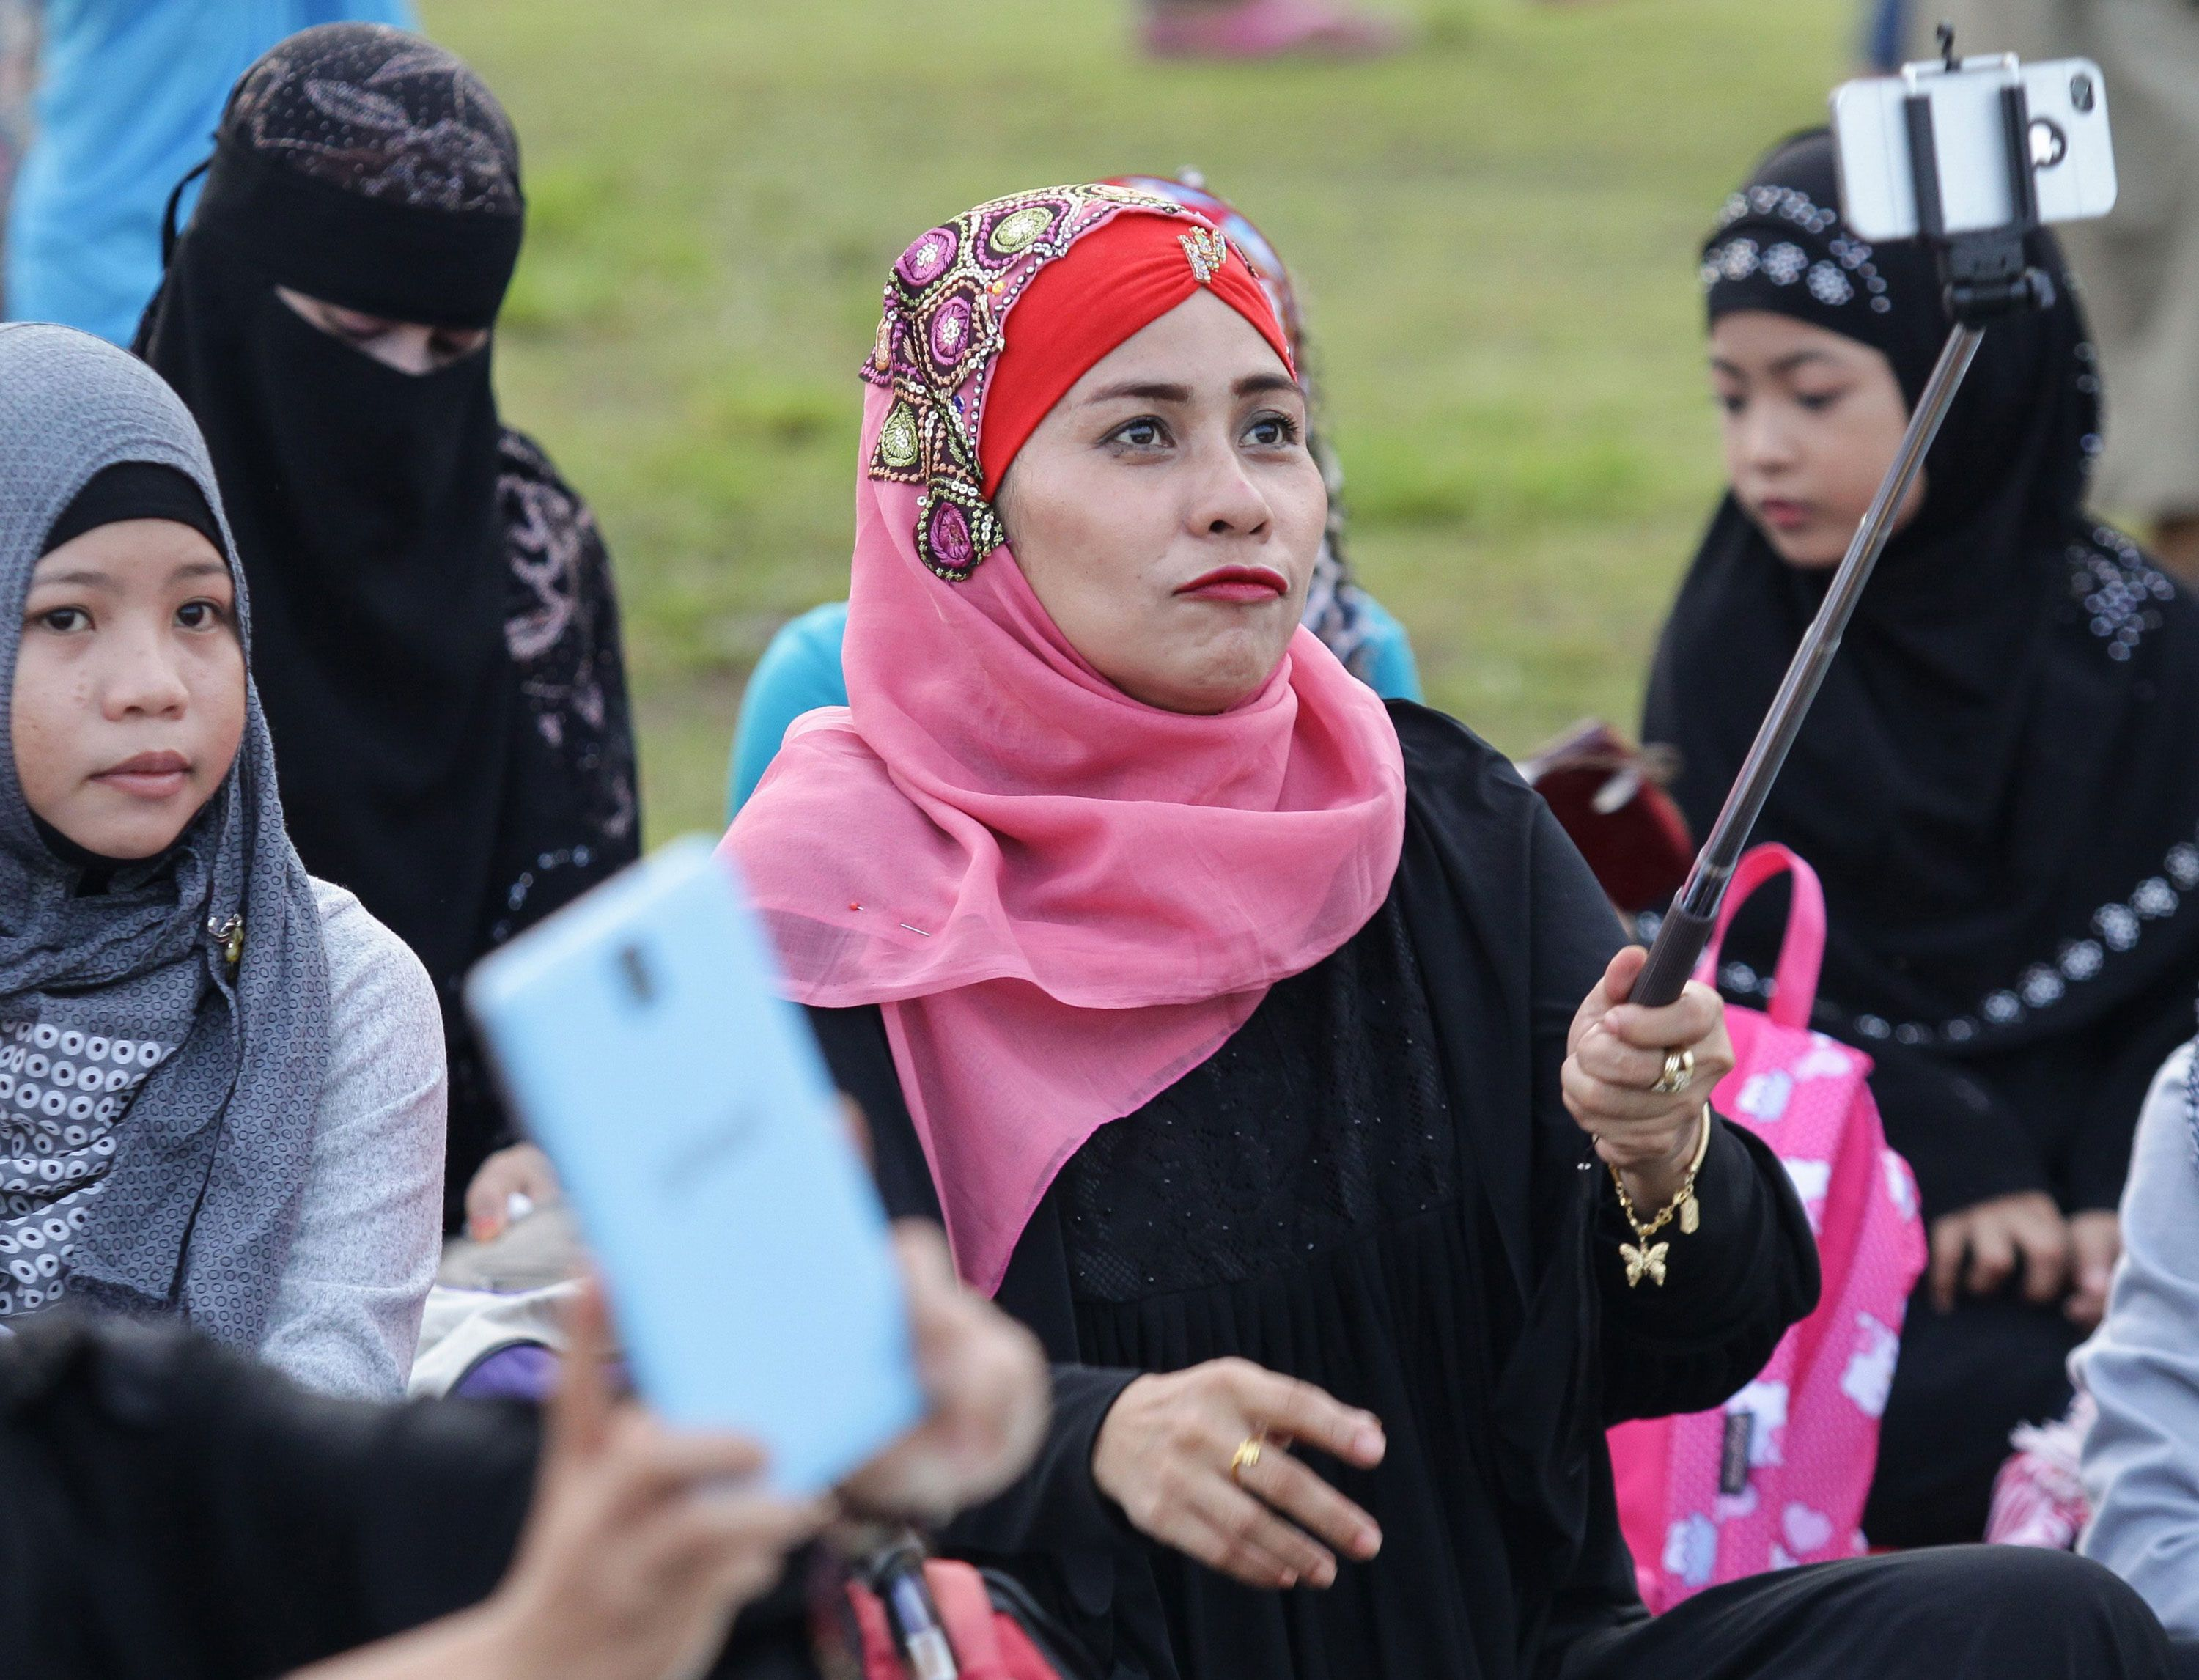 Filipino Muslim Women in Hijab and Veil takes a selfie as she attends morning prayers to celebrate Eid al-Adha at Luneta Park in Manila, the Philippines. [Mark R. Cristino/EPA]